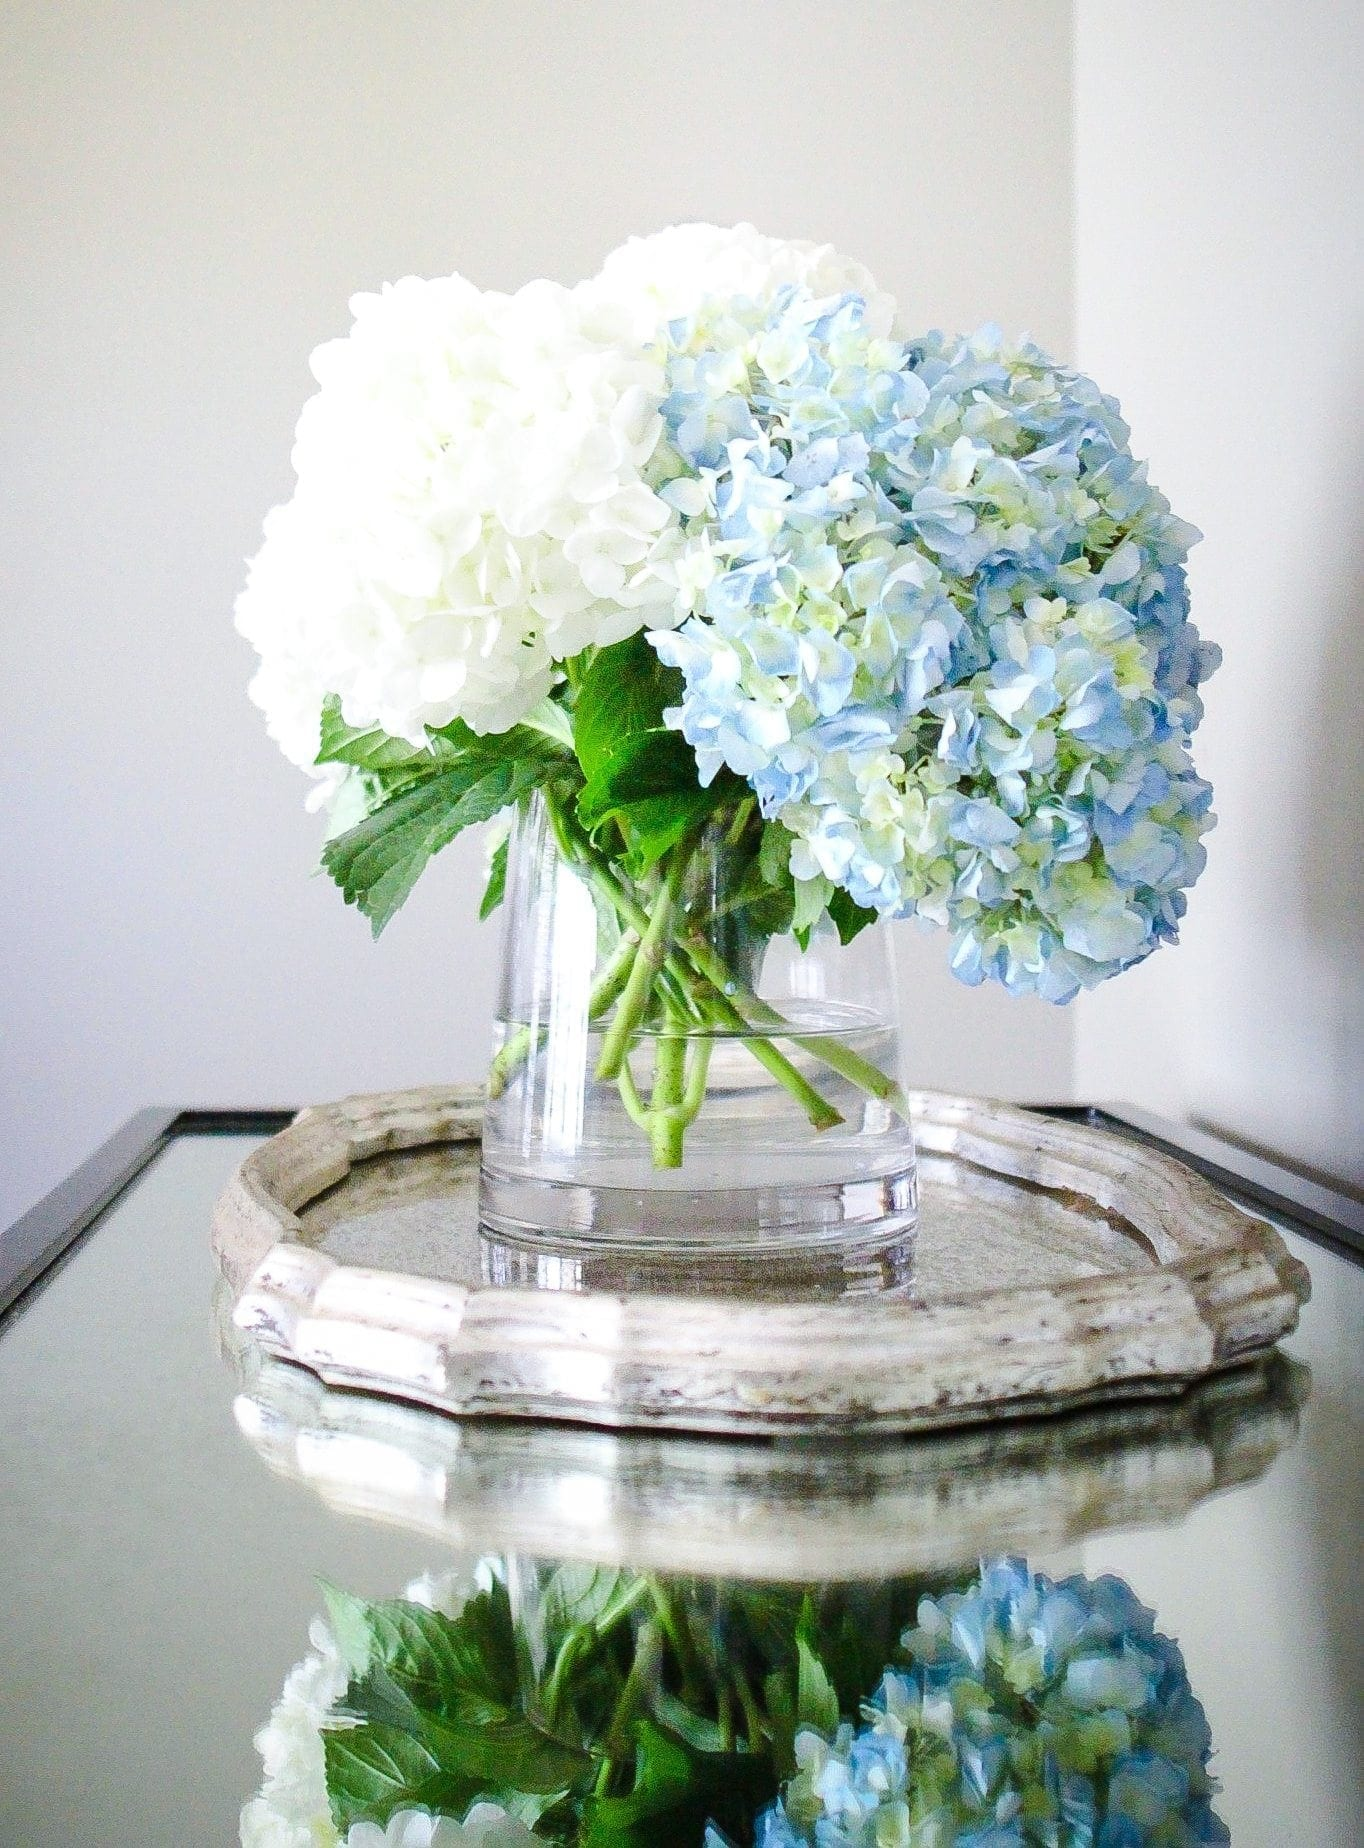 Blue and white hydrangea flower bouquet. Silver mirrored tray on mirrored console table.